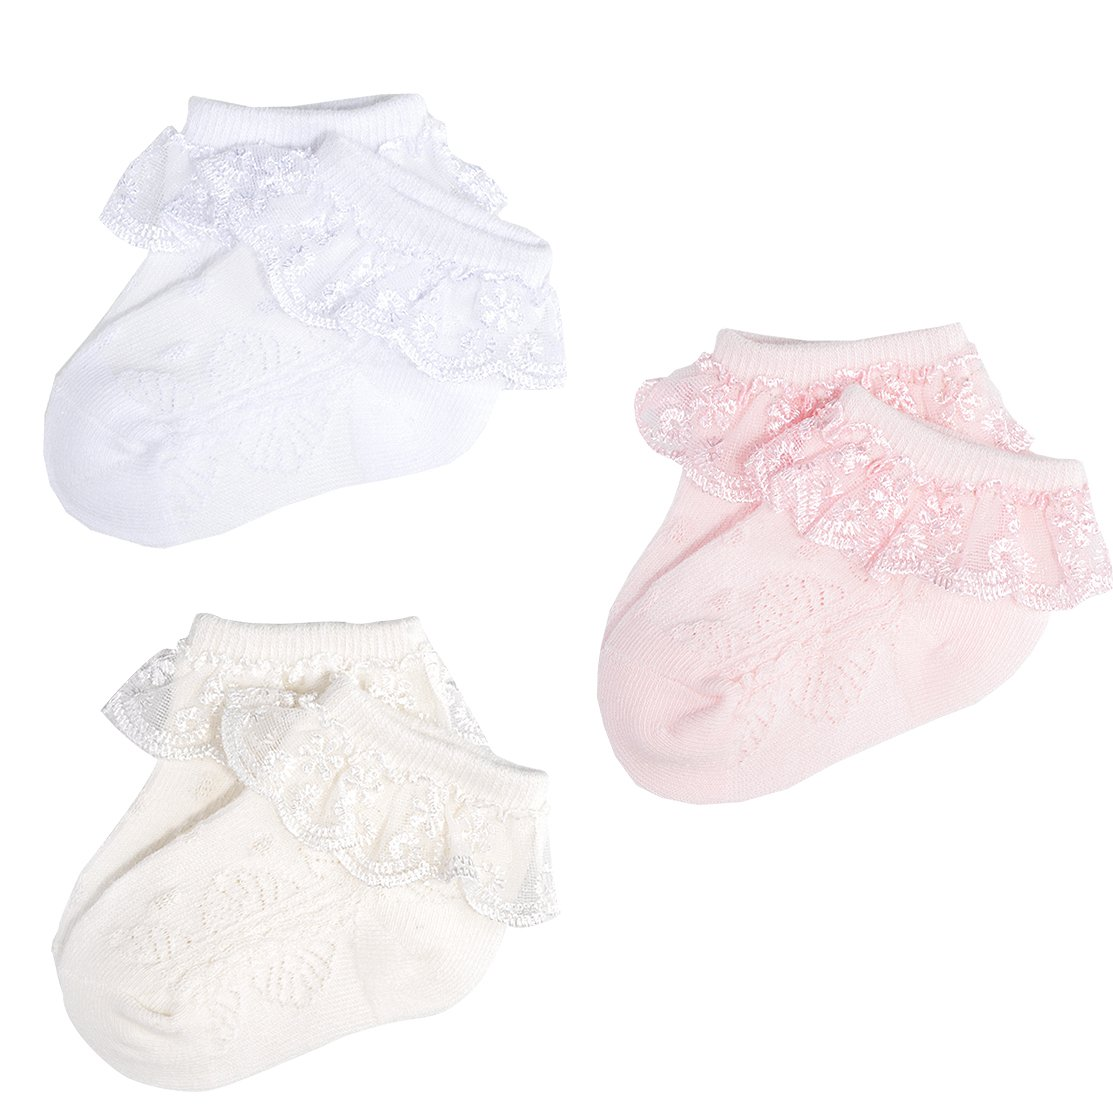 Epeius 3 Pair Baby-Girls Eyelet Frilly Lace Socks Princess Ankle Socks White/Pink/Off White 12-24 Months